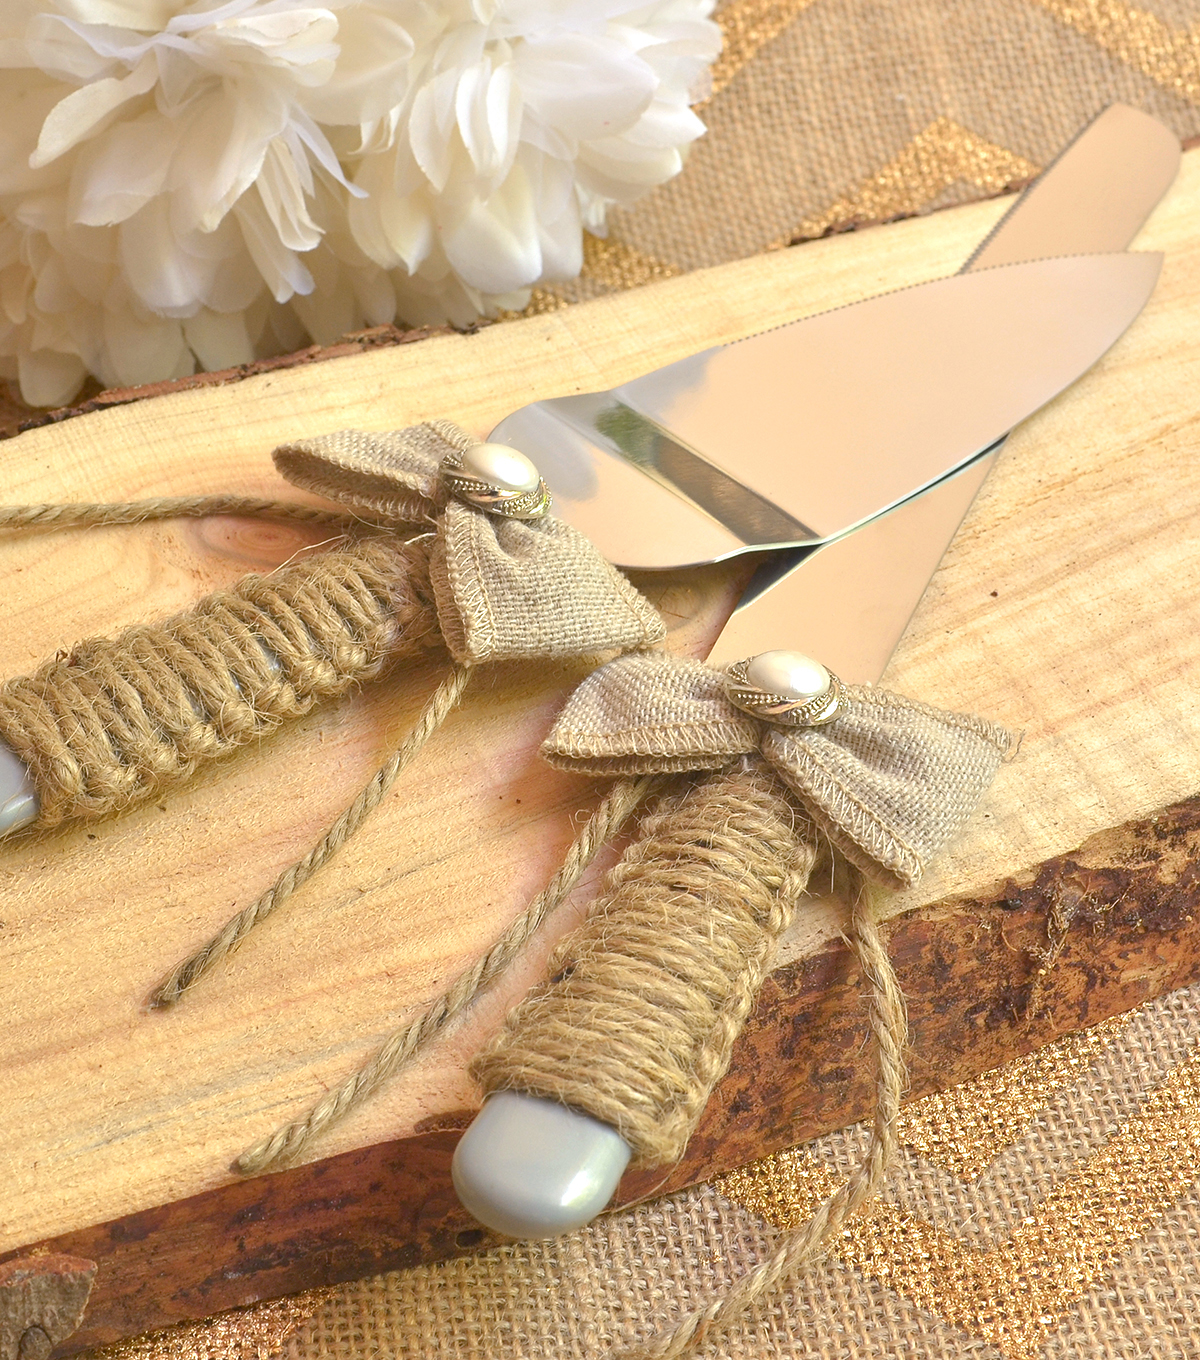 Rustic Cake Serving Set